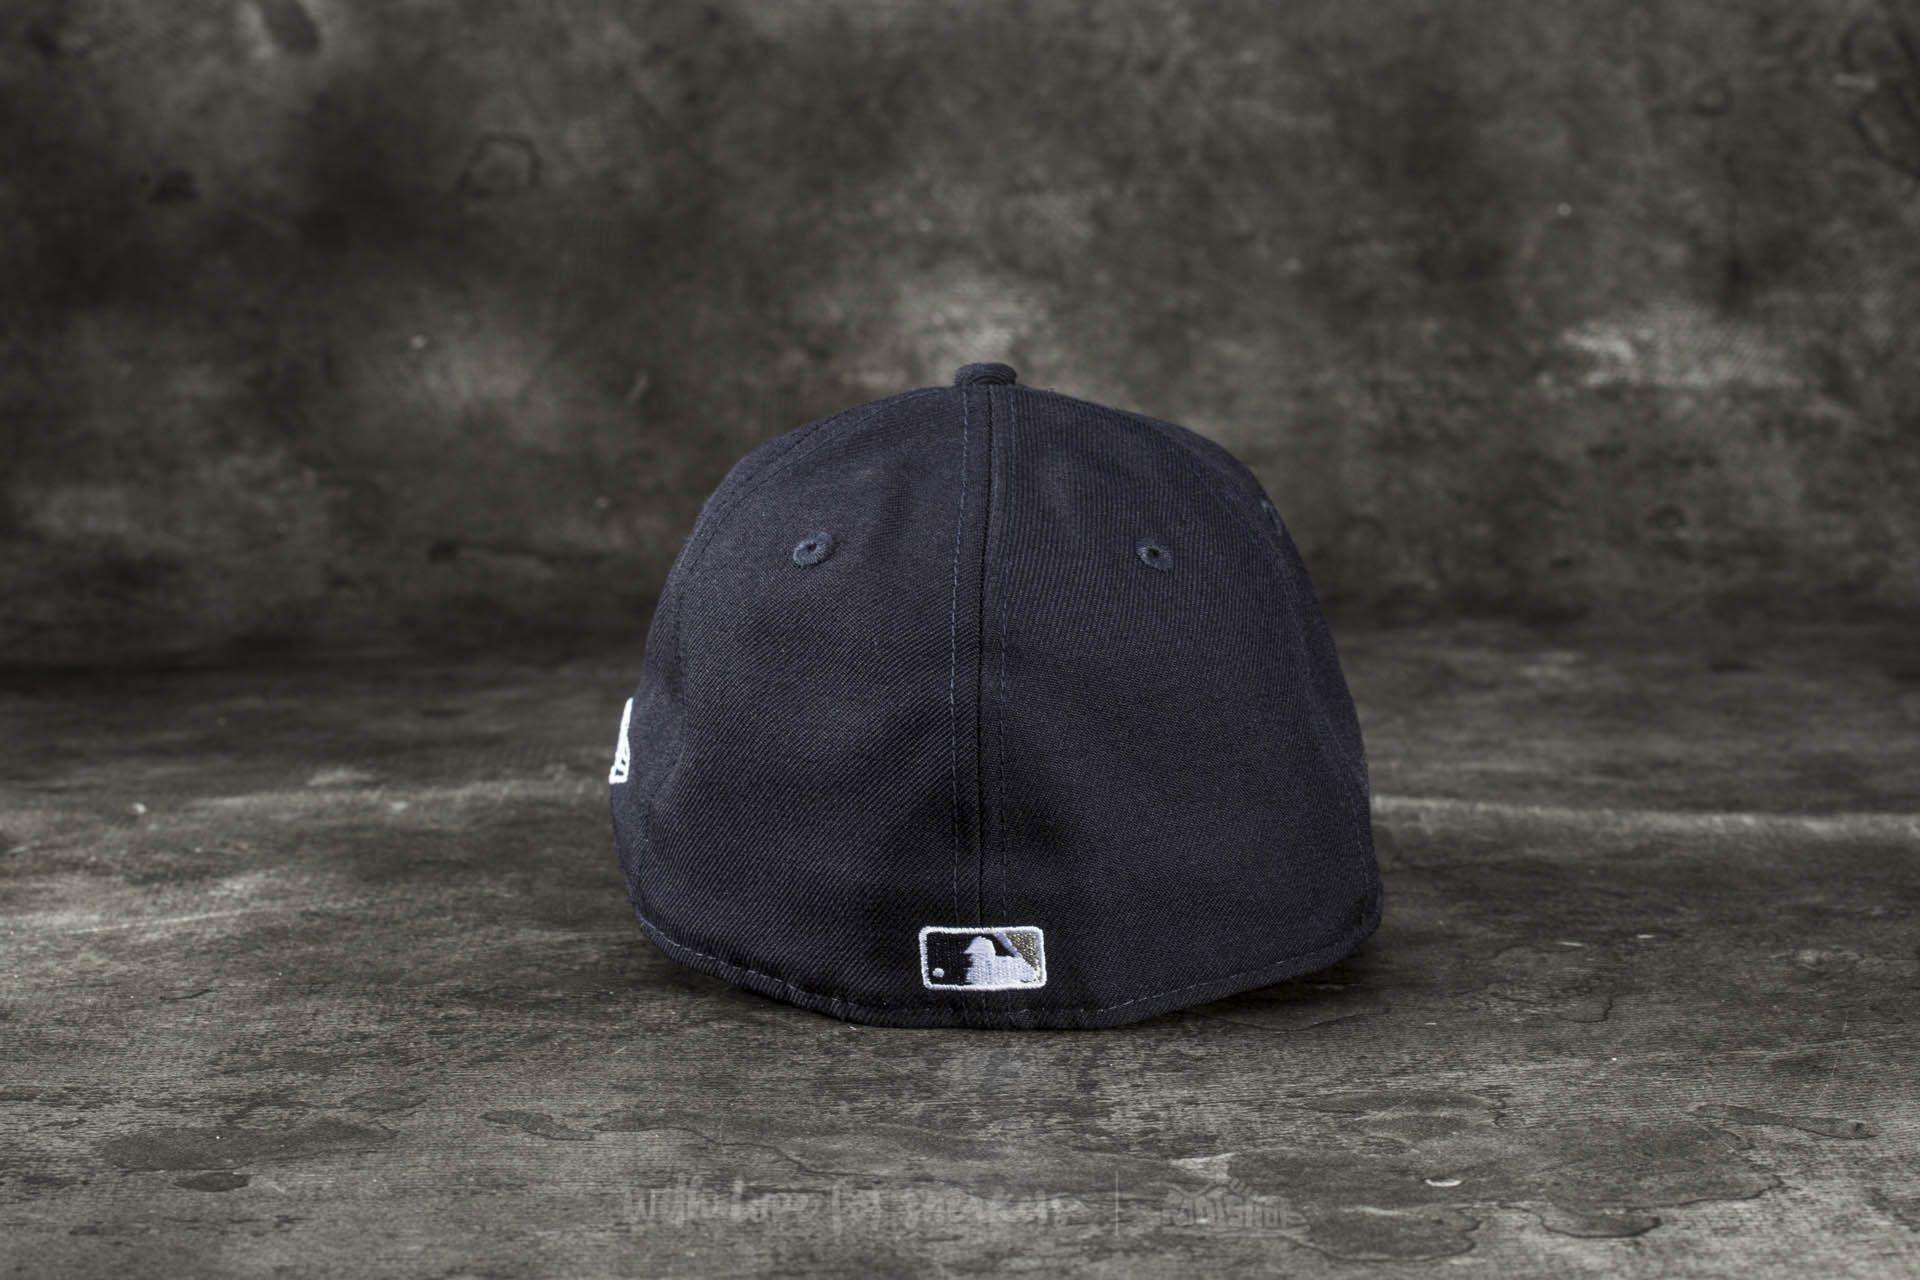 044ef8c794e ... coupon code for lyst ktz 59fifty low profile mini logo new york yankees  cap navy 7966c